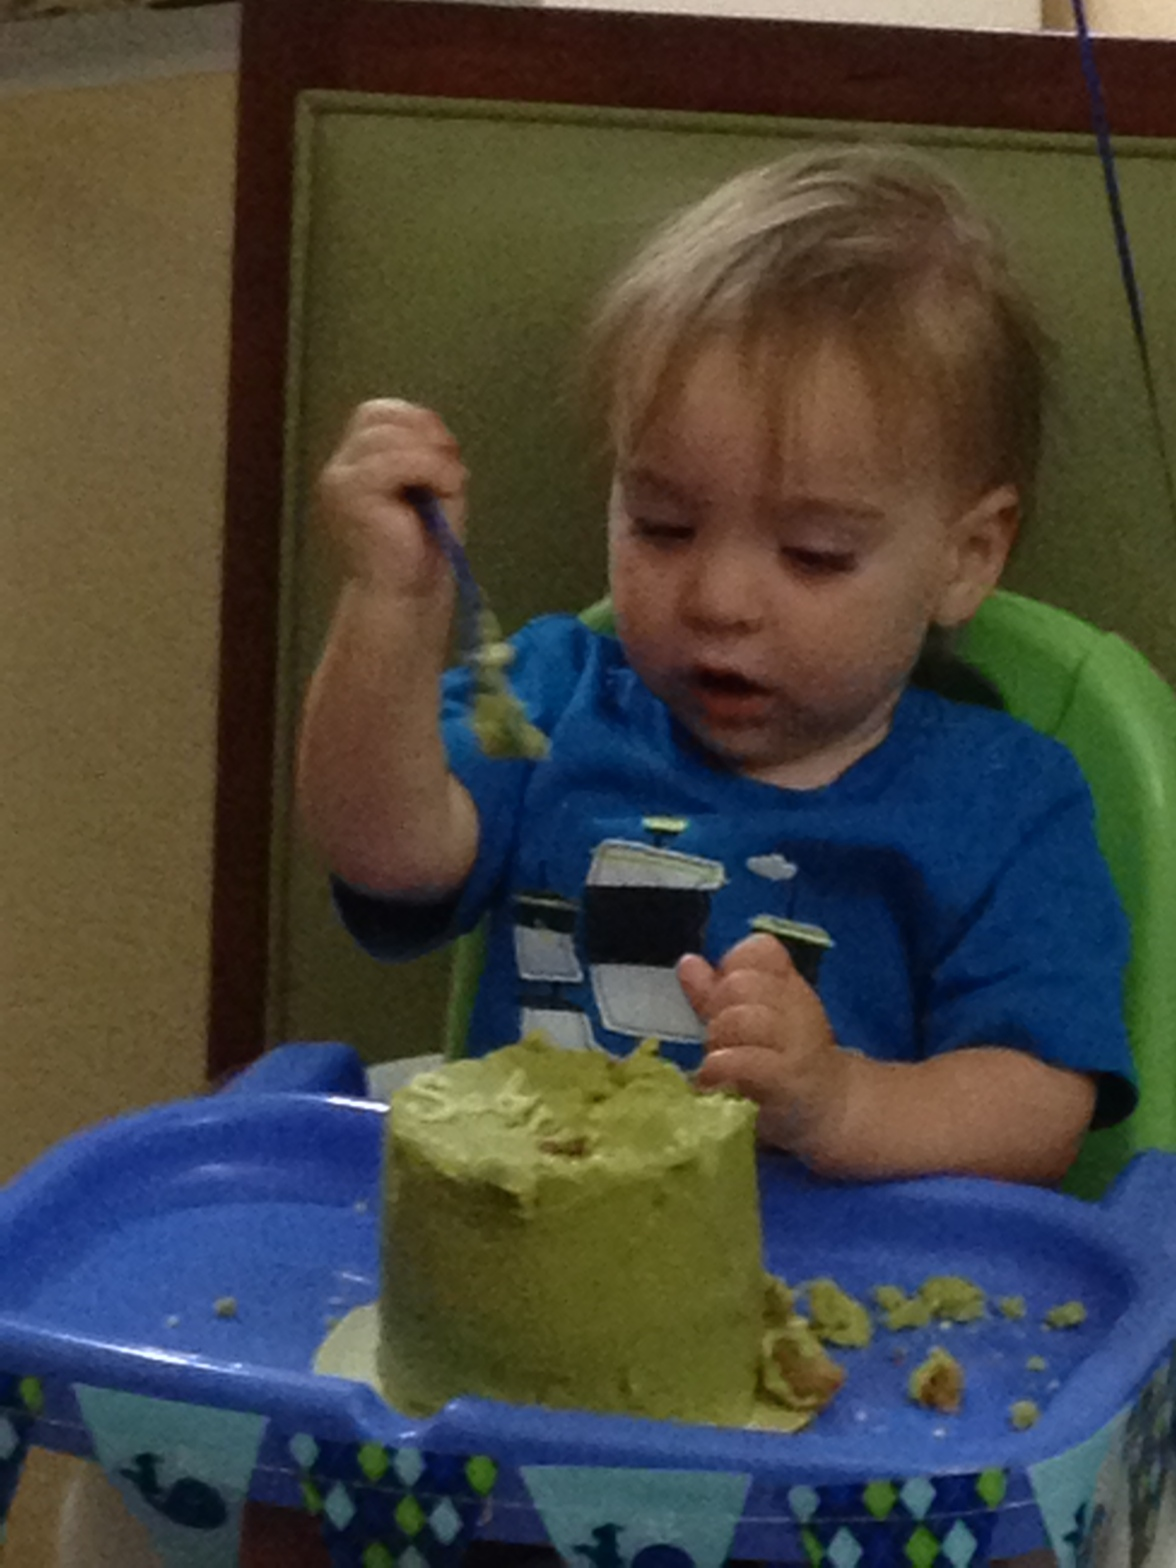 Had to slip this one in of the grandson with his smash cake.